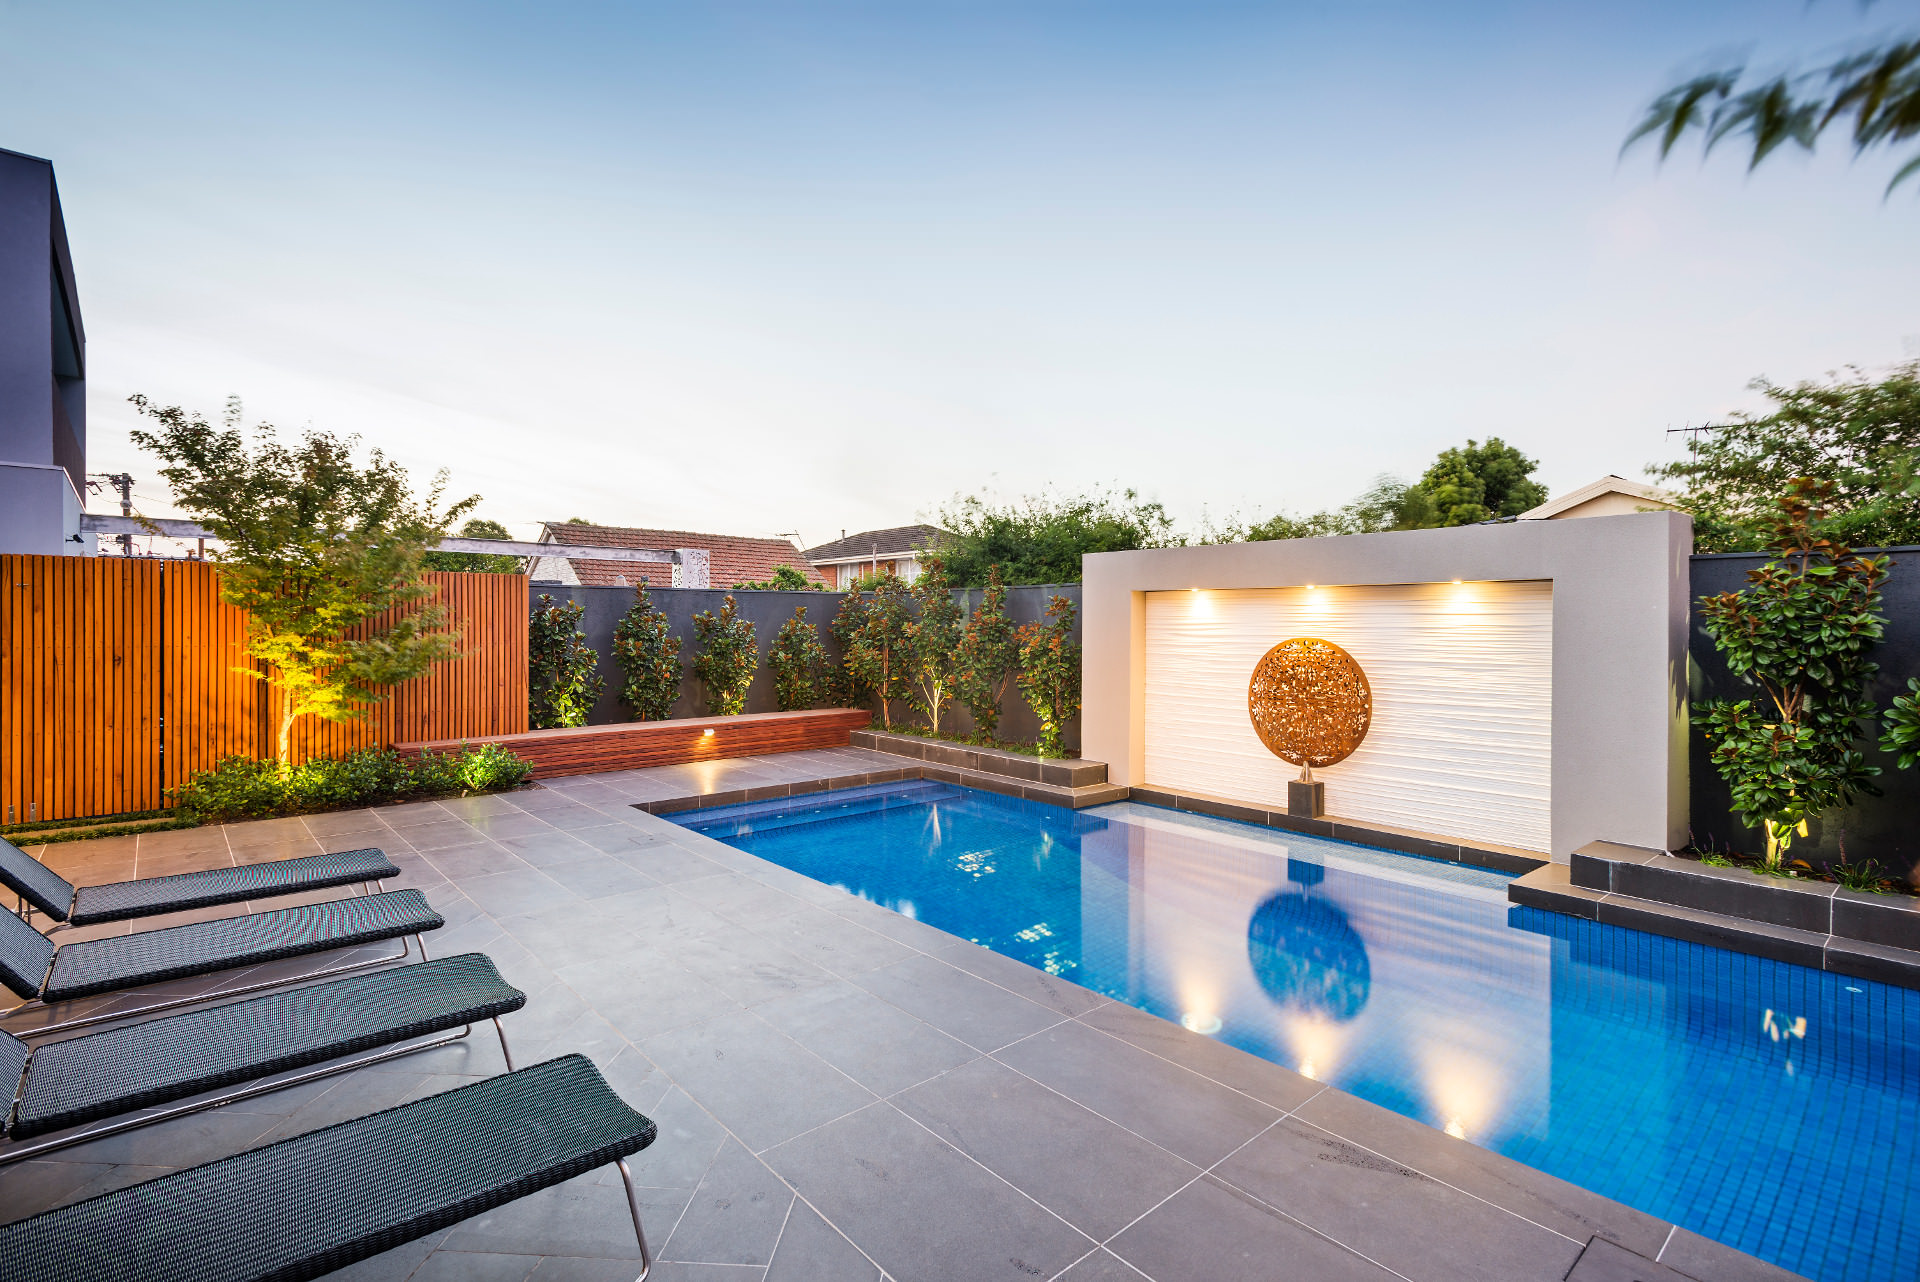 28 pool landscape designs decorating ideas design for Pool design ideas australia